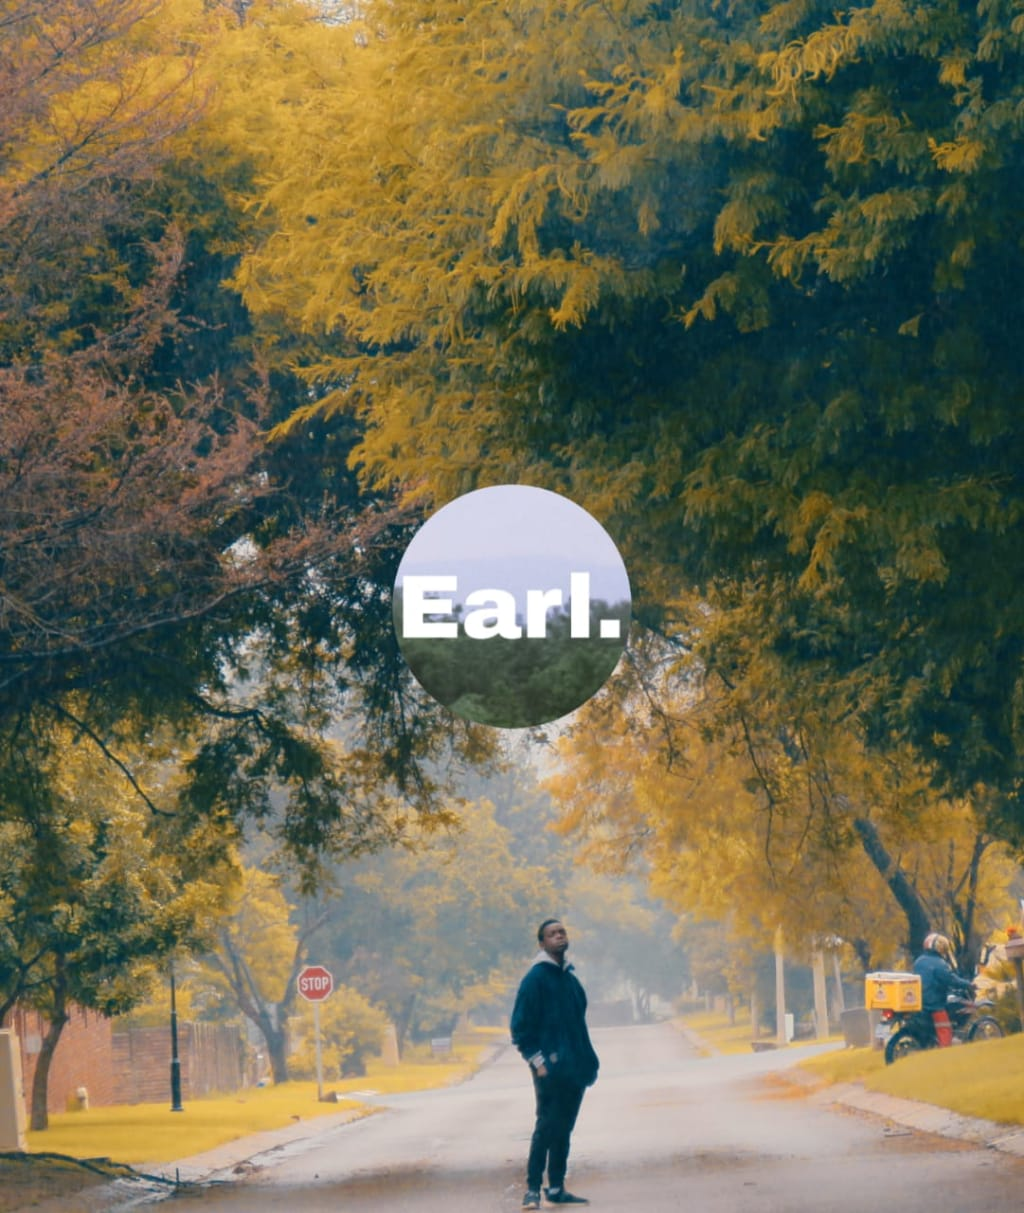 The Future might be Earl.